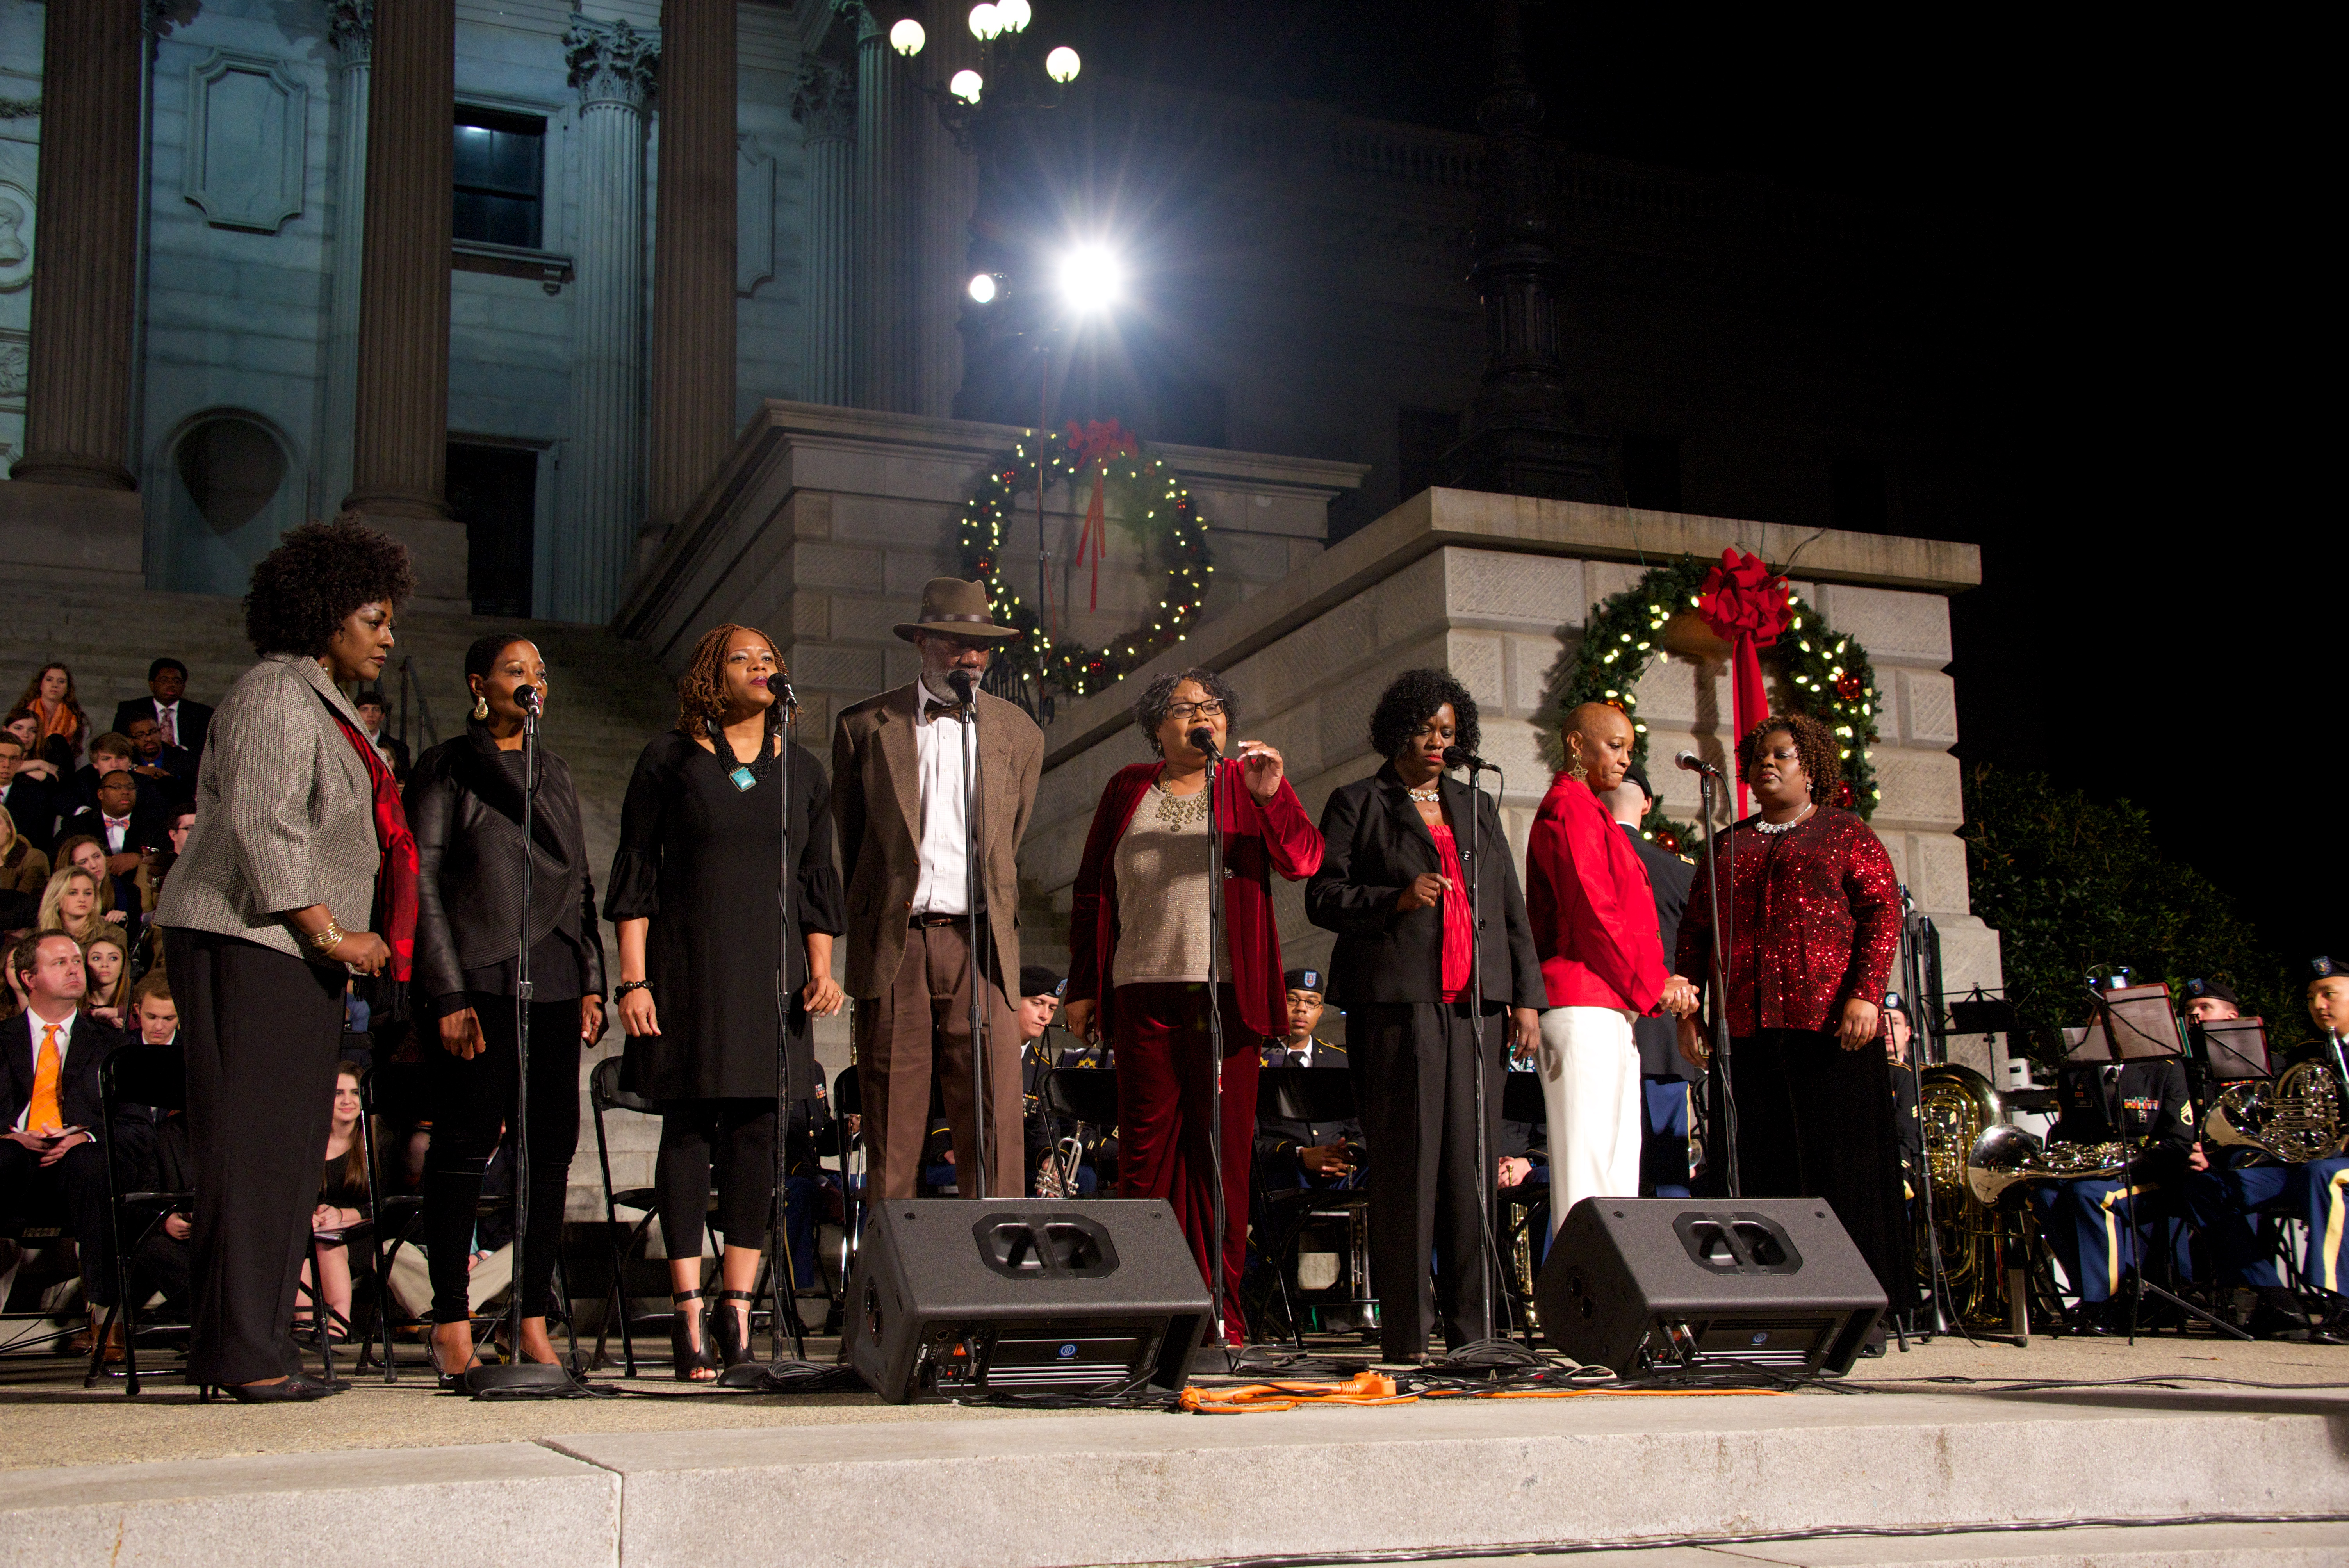 South Carolina Governor's Carolighting at the South Carolina State House in Columbia, SC